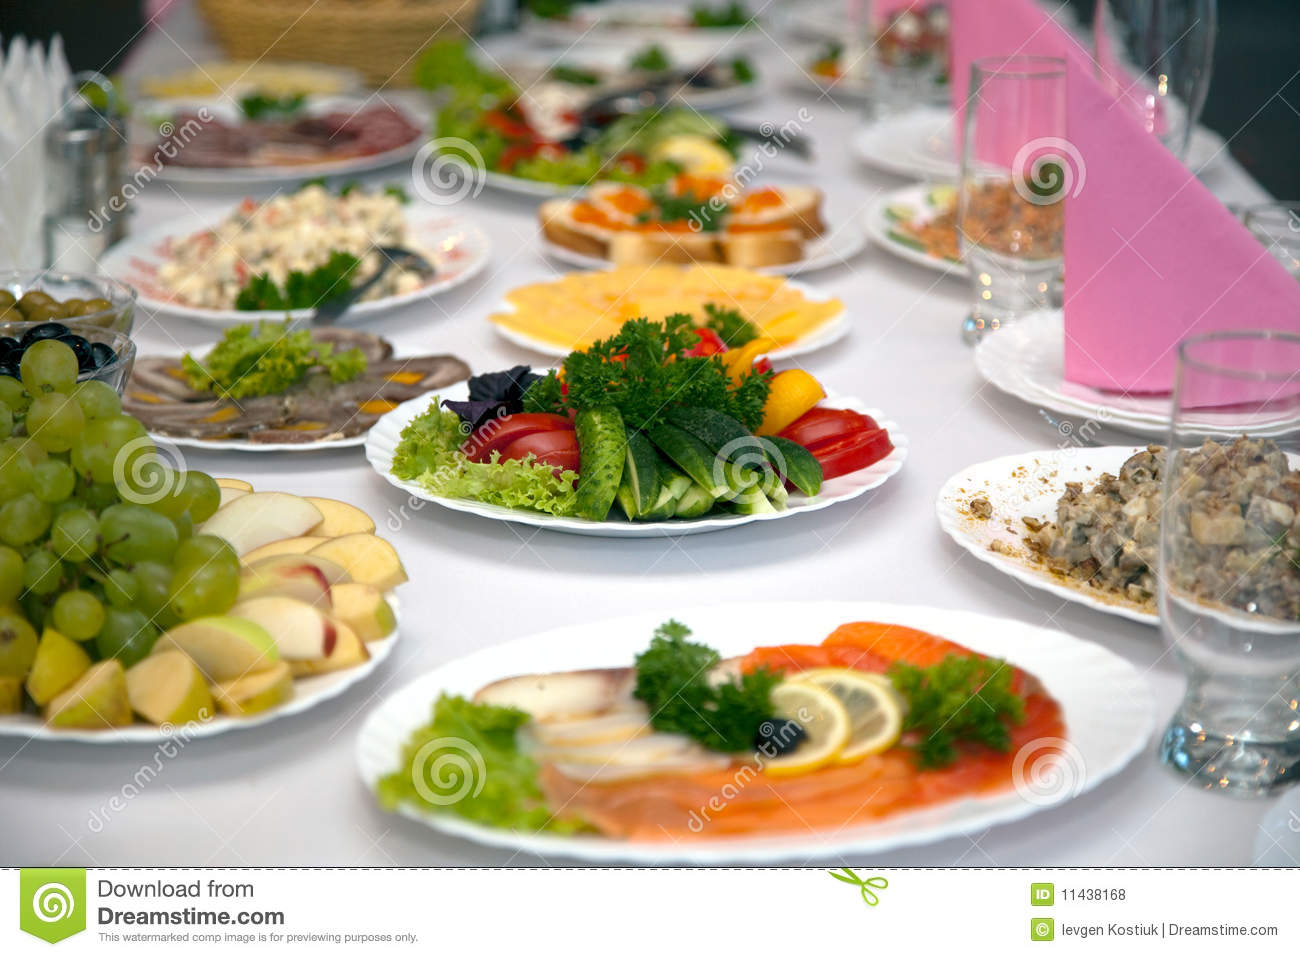 Food At Banquet Table Royalty Free Stock Photos   Image  11438168